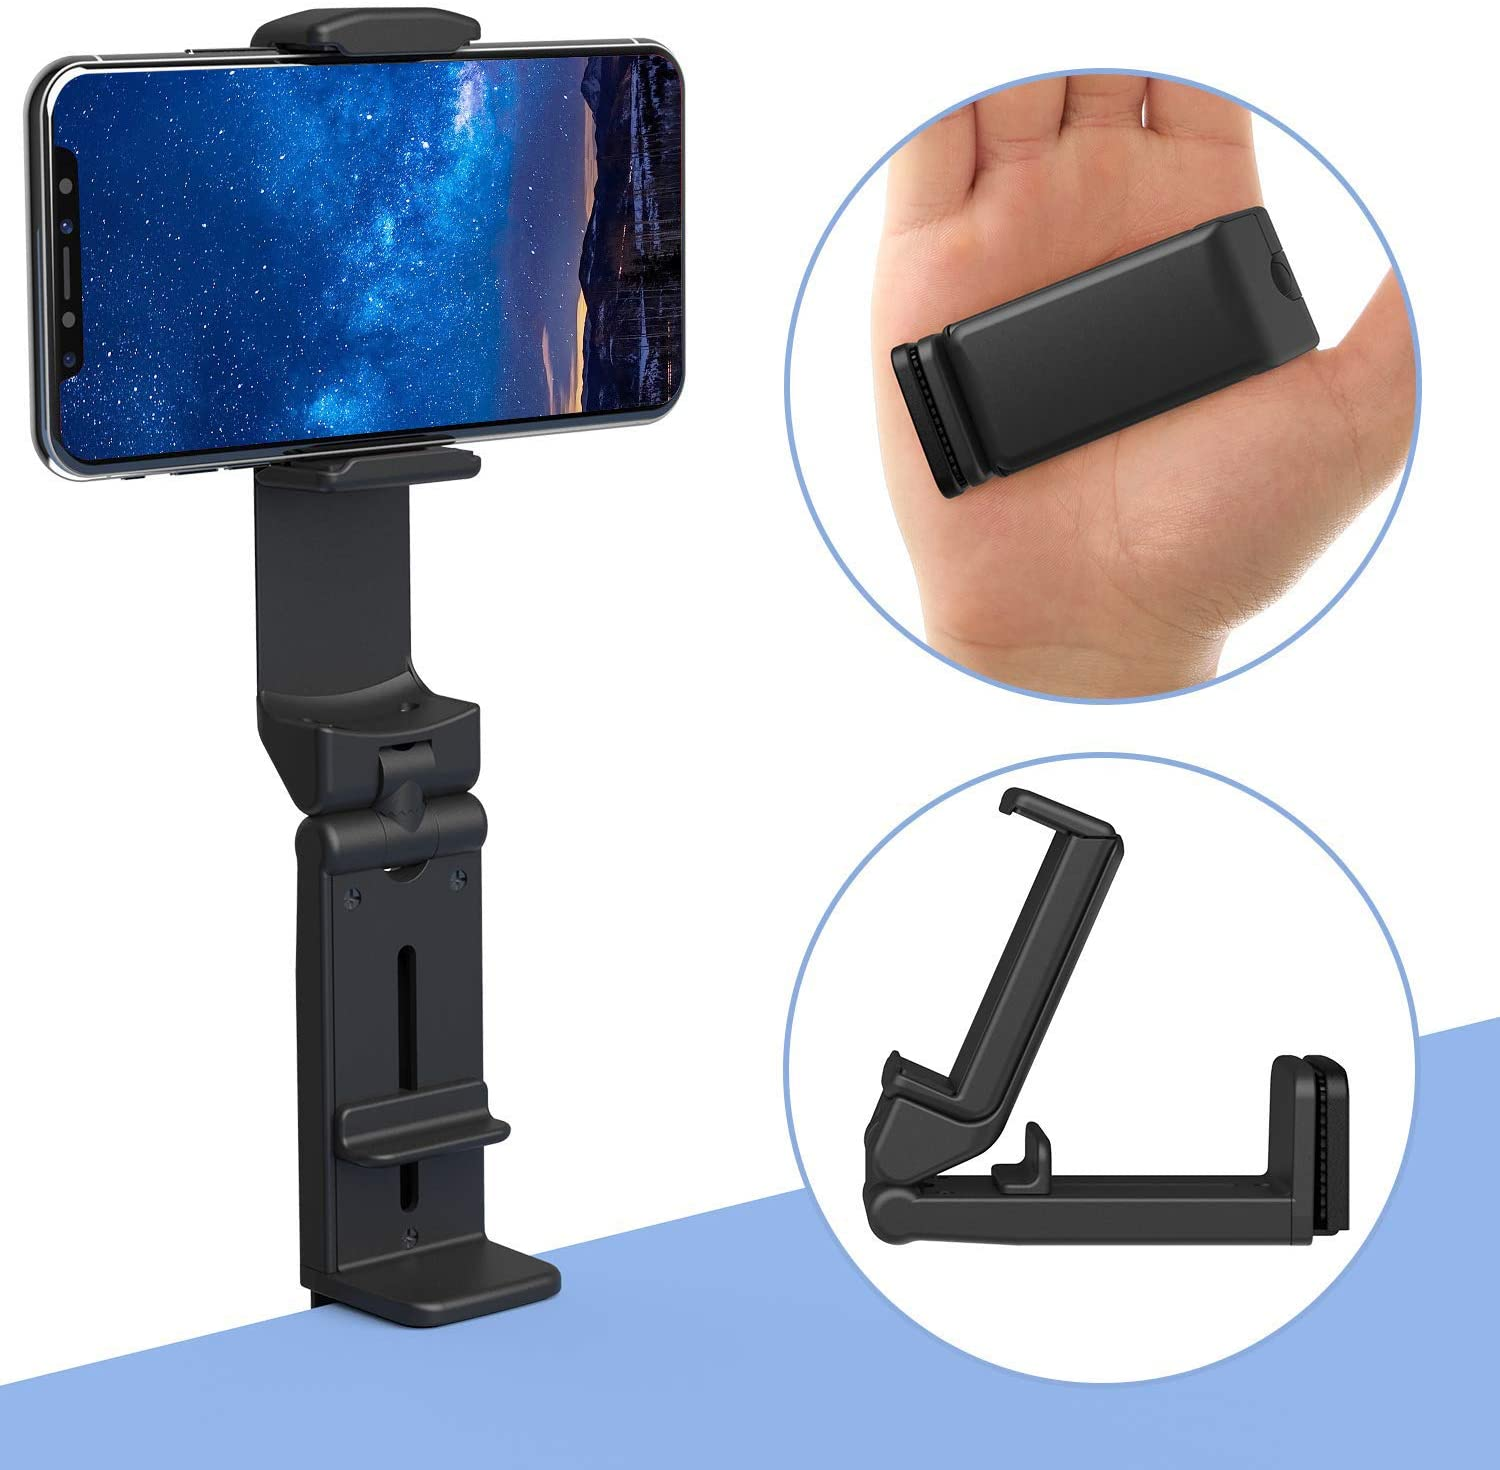 Phone Stand Holder Universal Cell Phone Mount 360 Degree Rotating Adjustable Phone Clamp For IPhone X/XS/8P